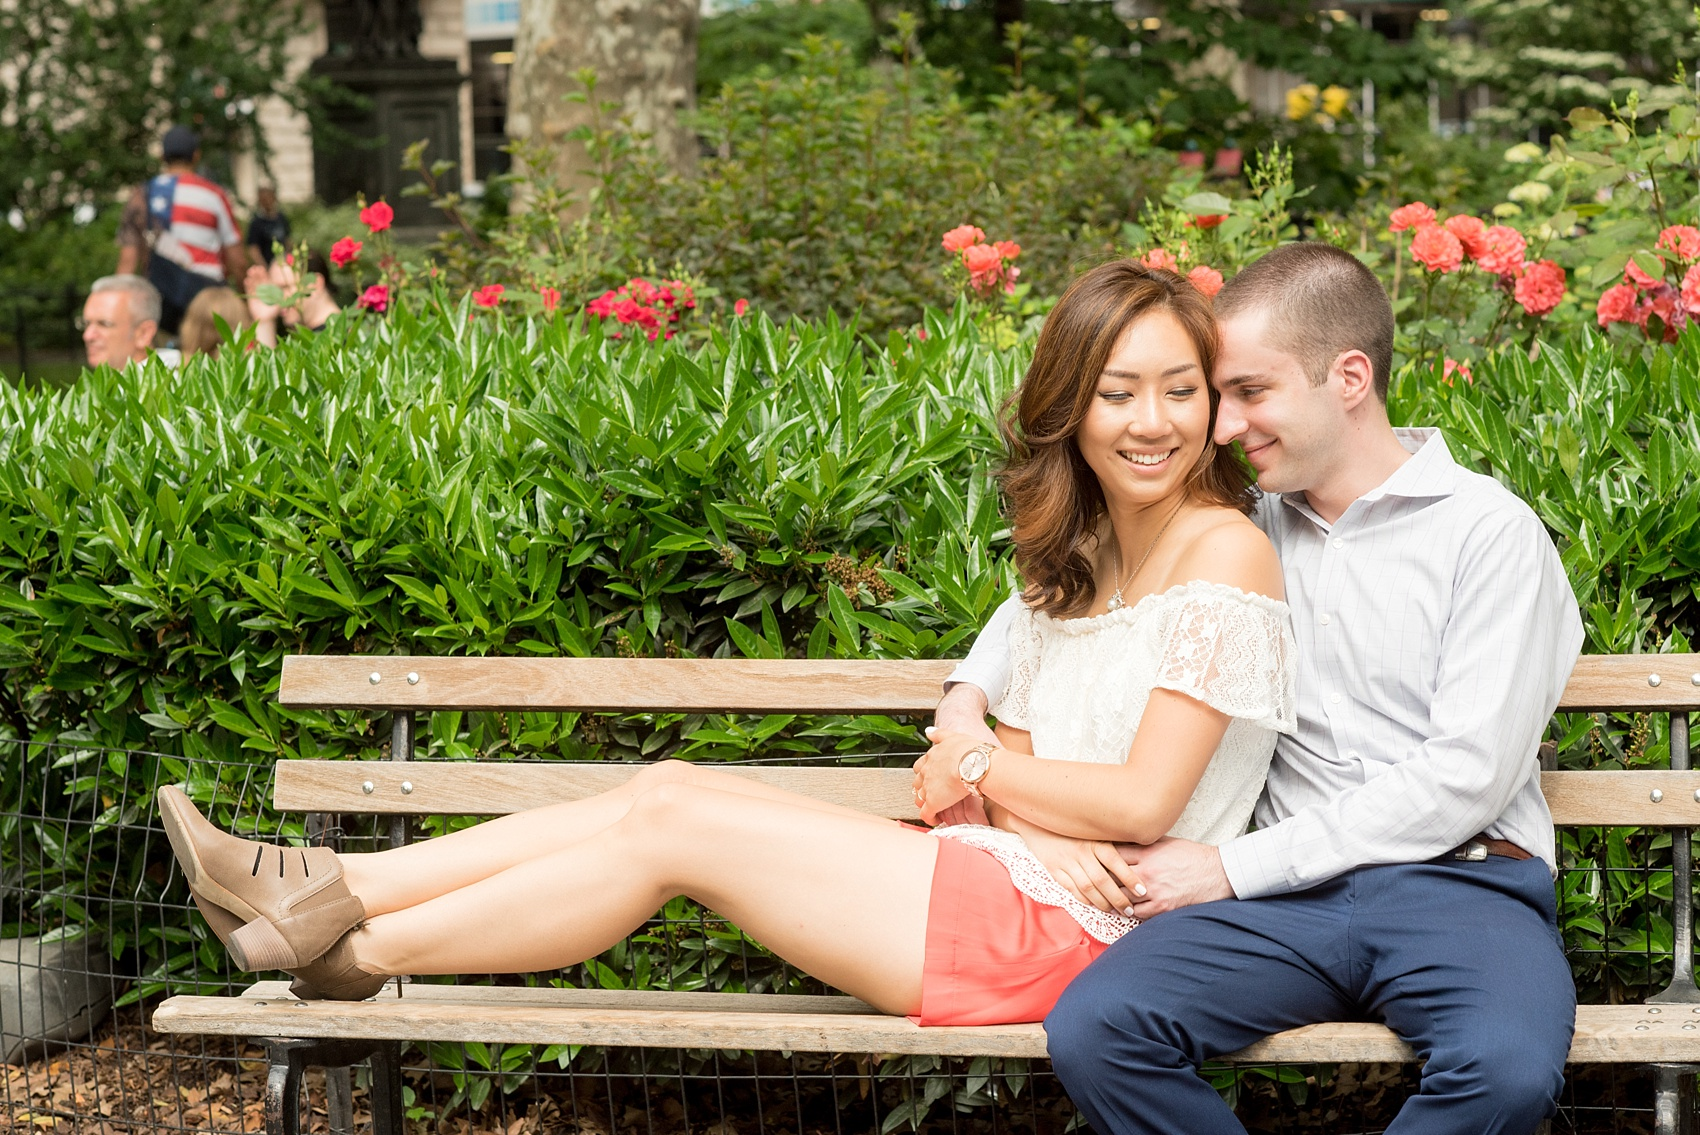 Mikkel Paige Photography photos of a Madison Square Park engagement session in NYC during spring. The bride wore an off-the-shoulder white lace top and orange shorts.